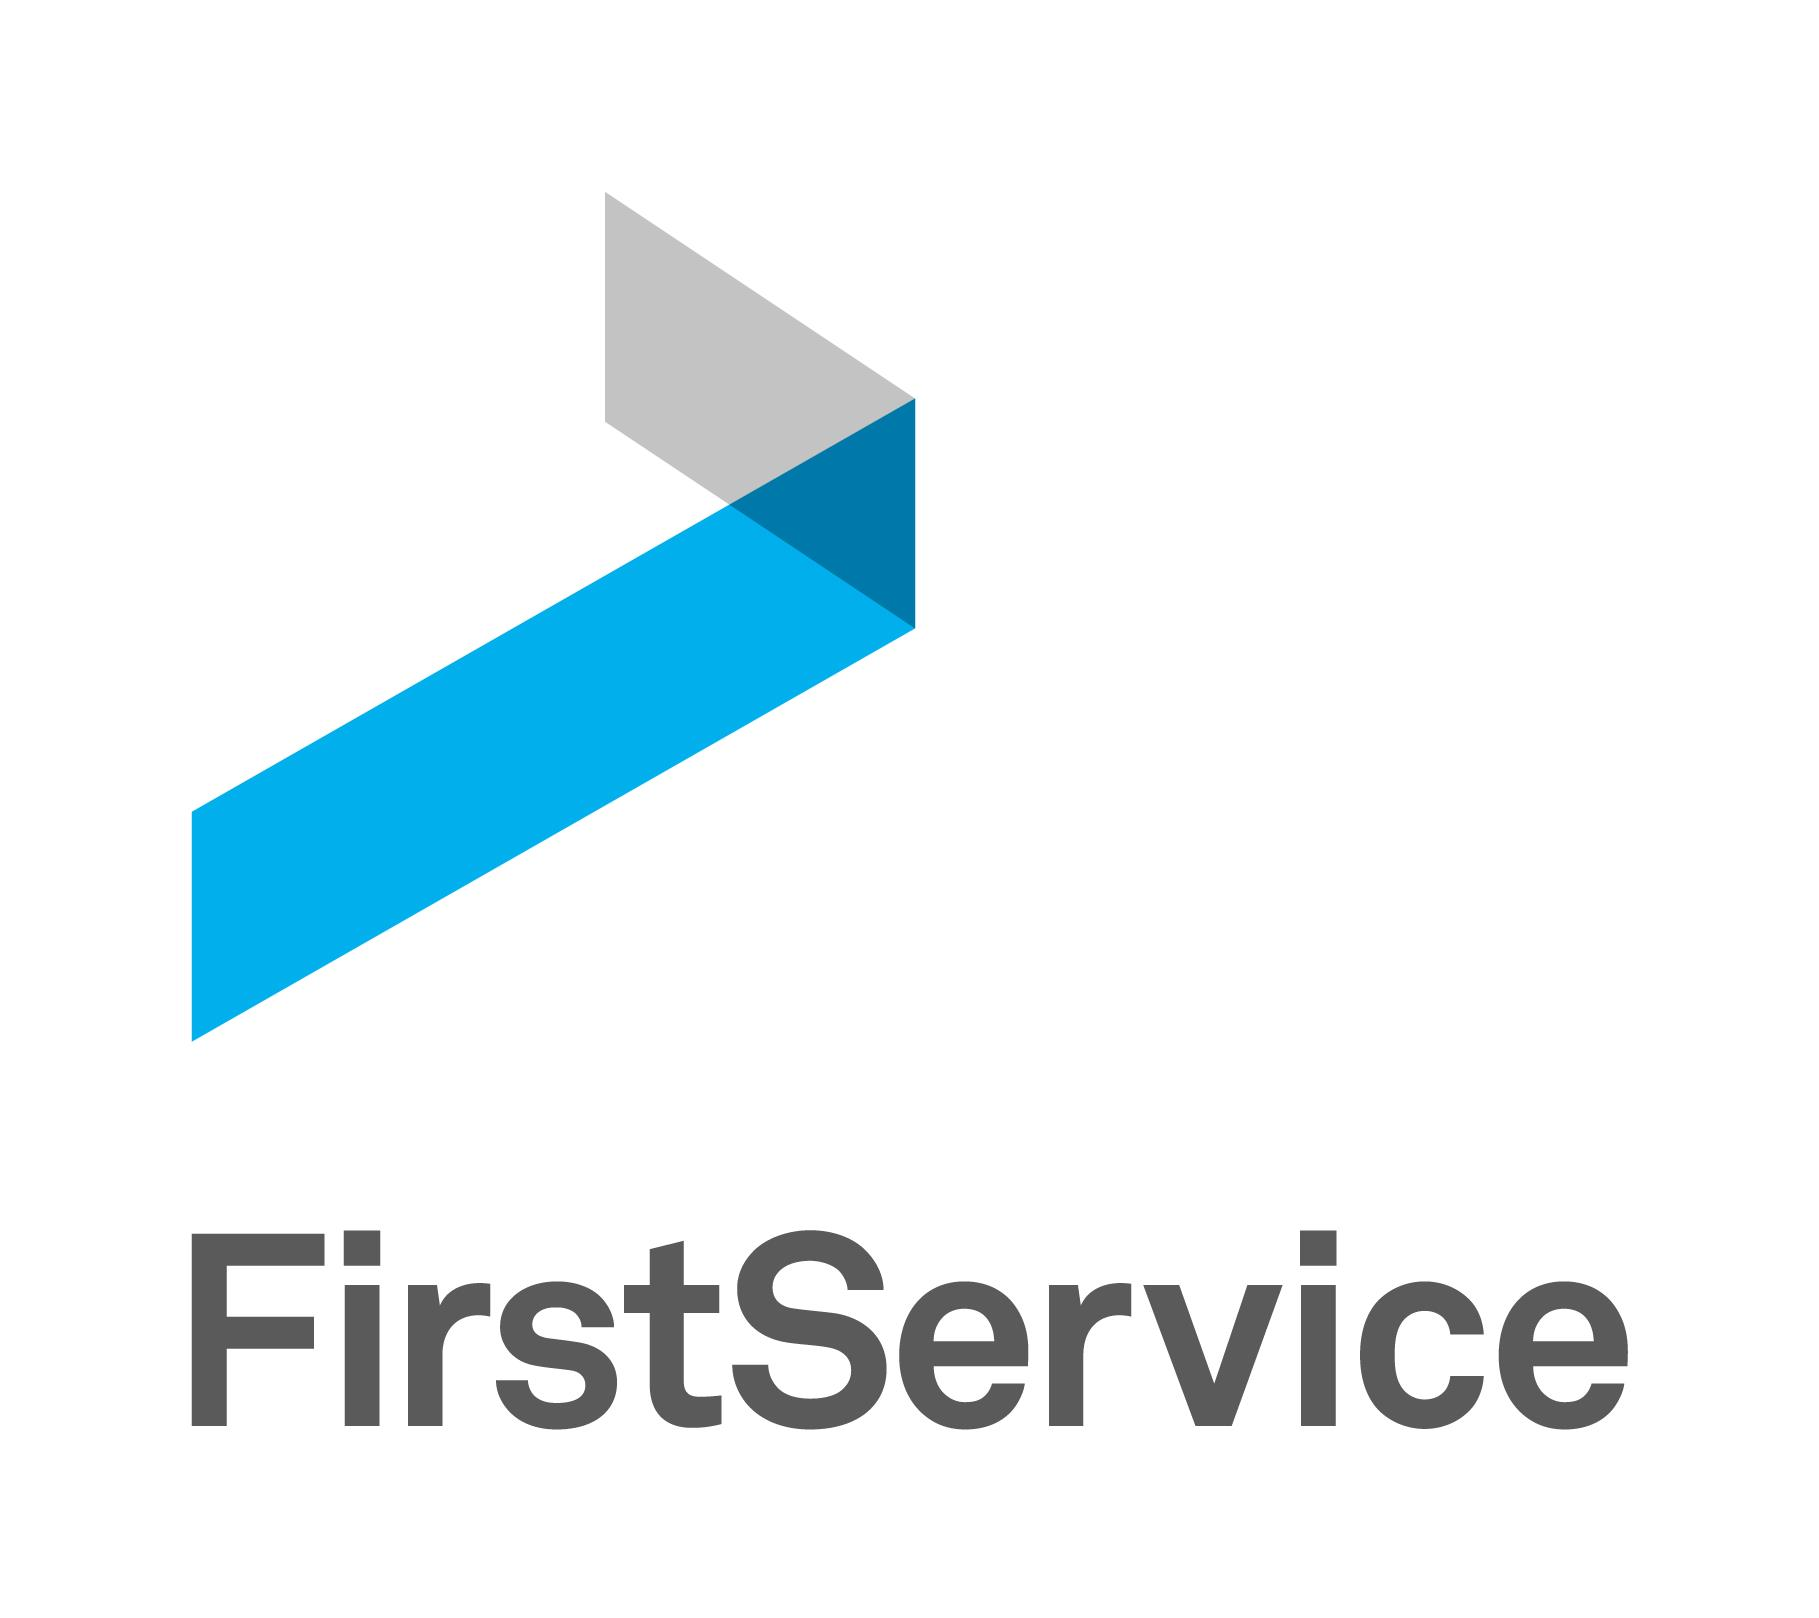 FirstService Corporation Completes US$200 Million Bought Deal Public Offering of Common Shares